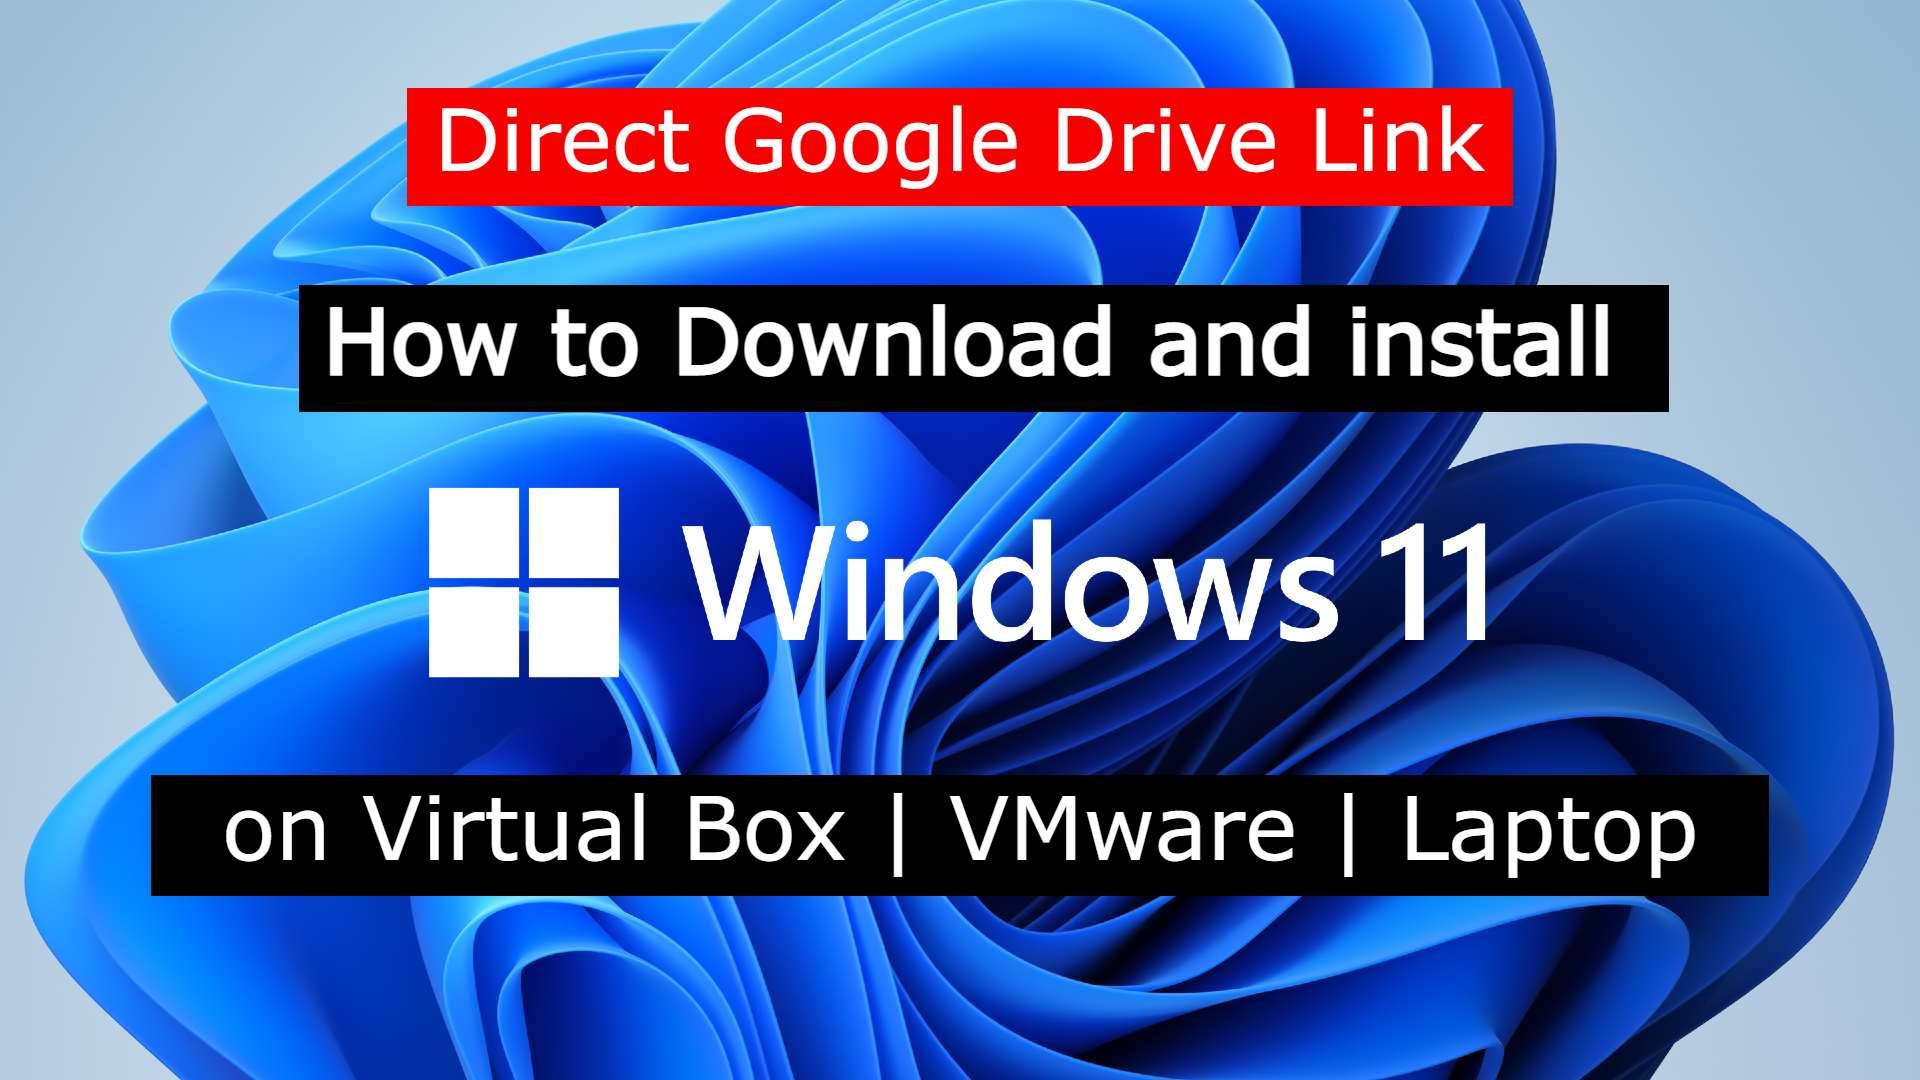 How to Download and install Windows 11 on Virtual Box | VMware | Laptop